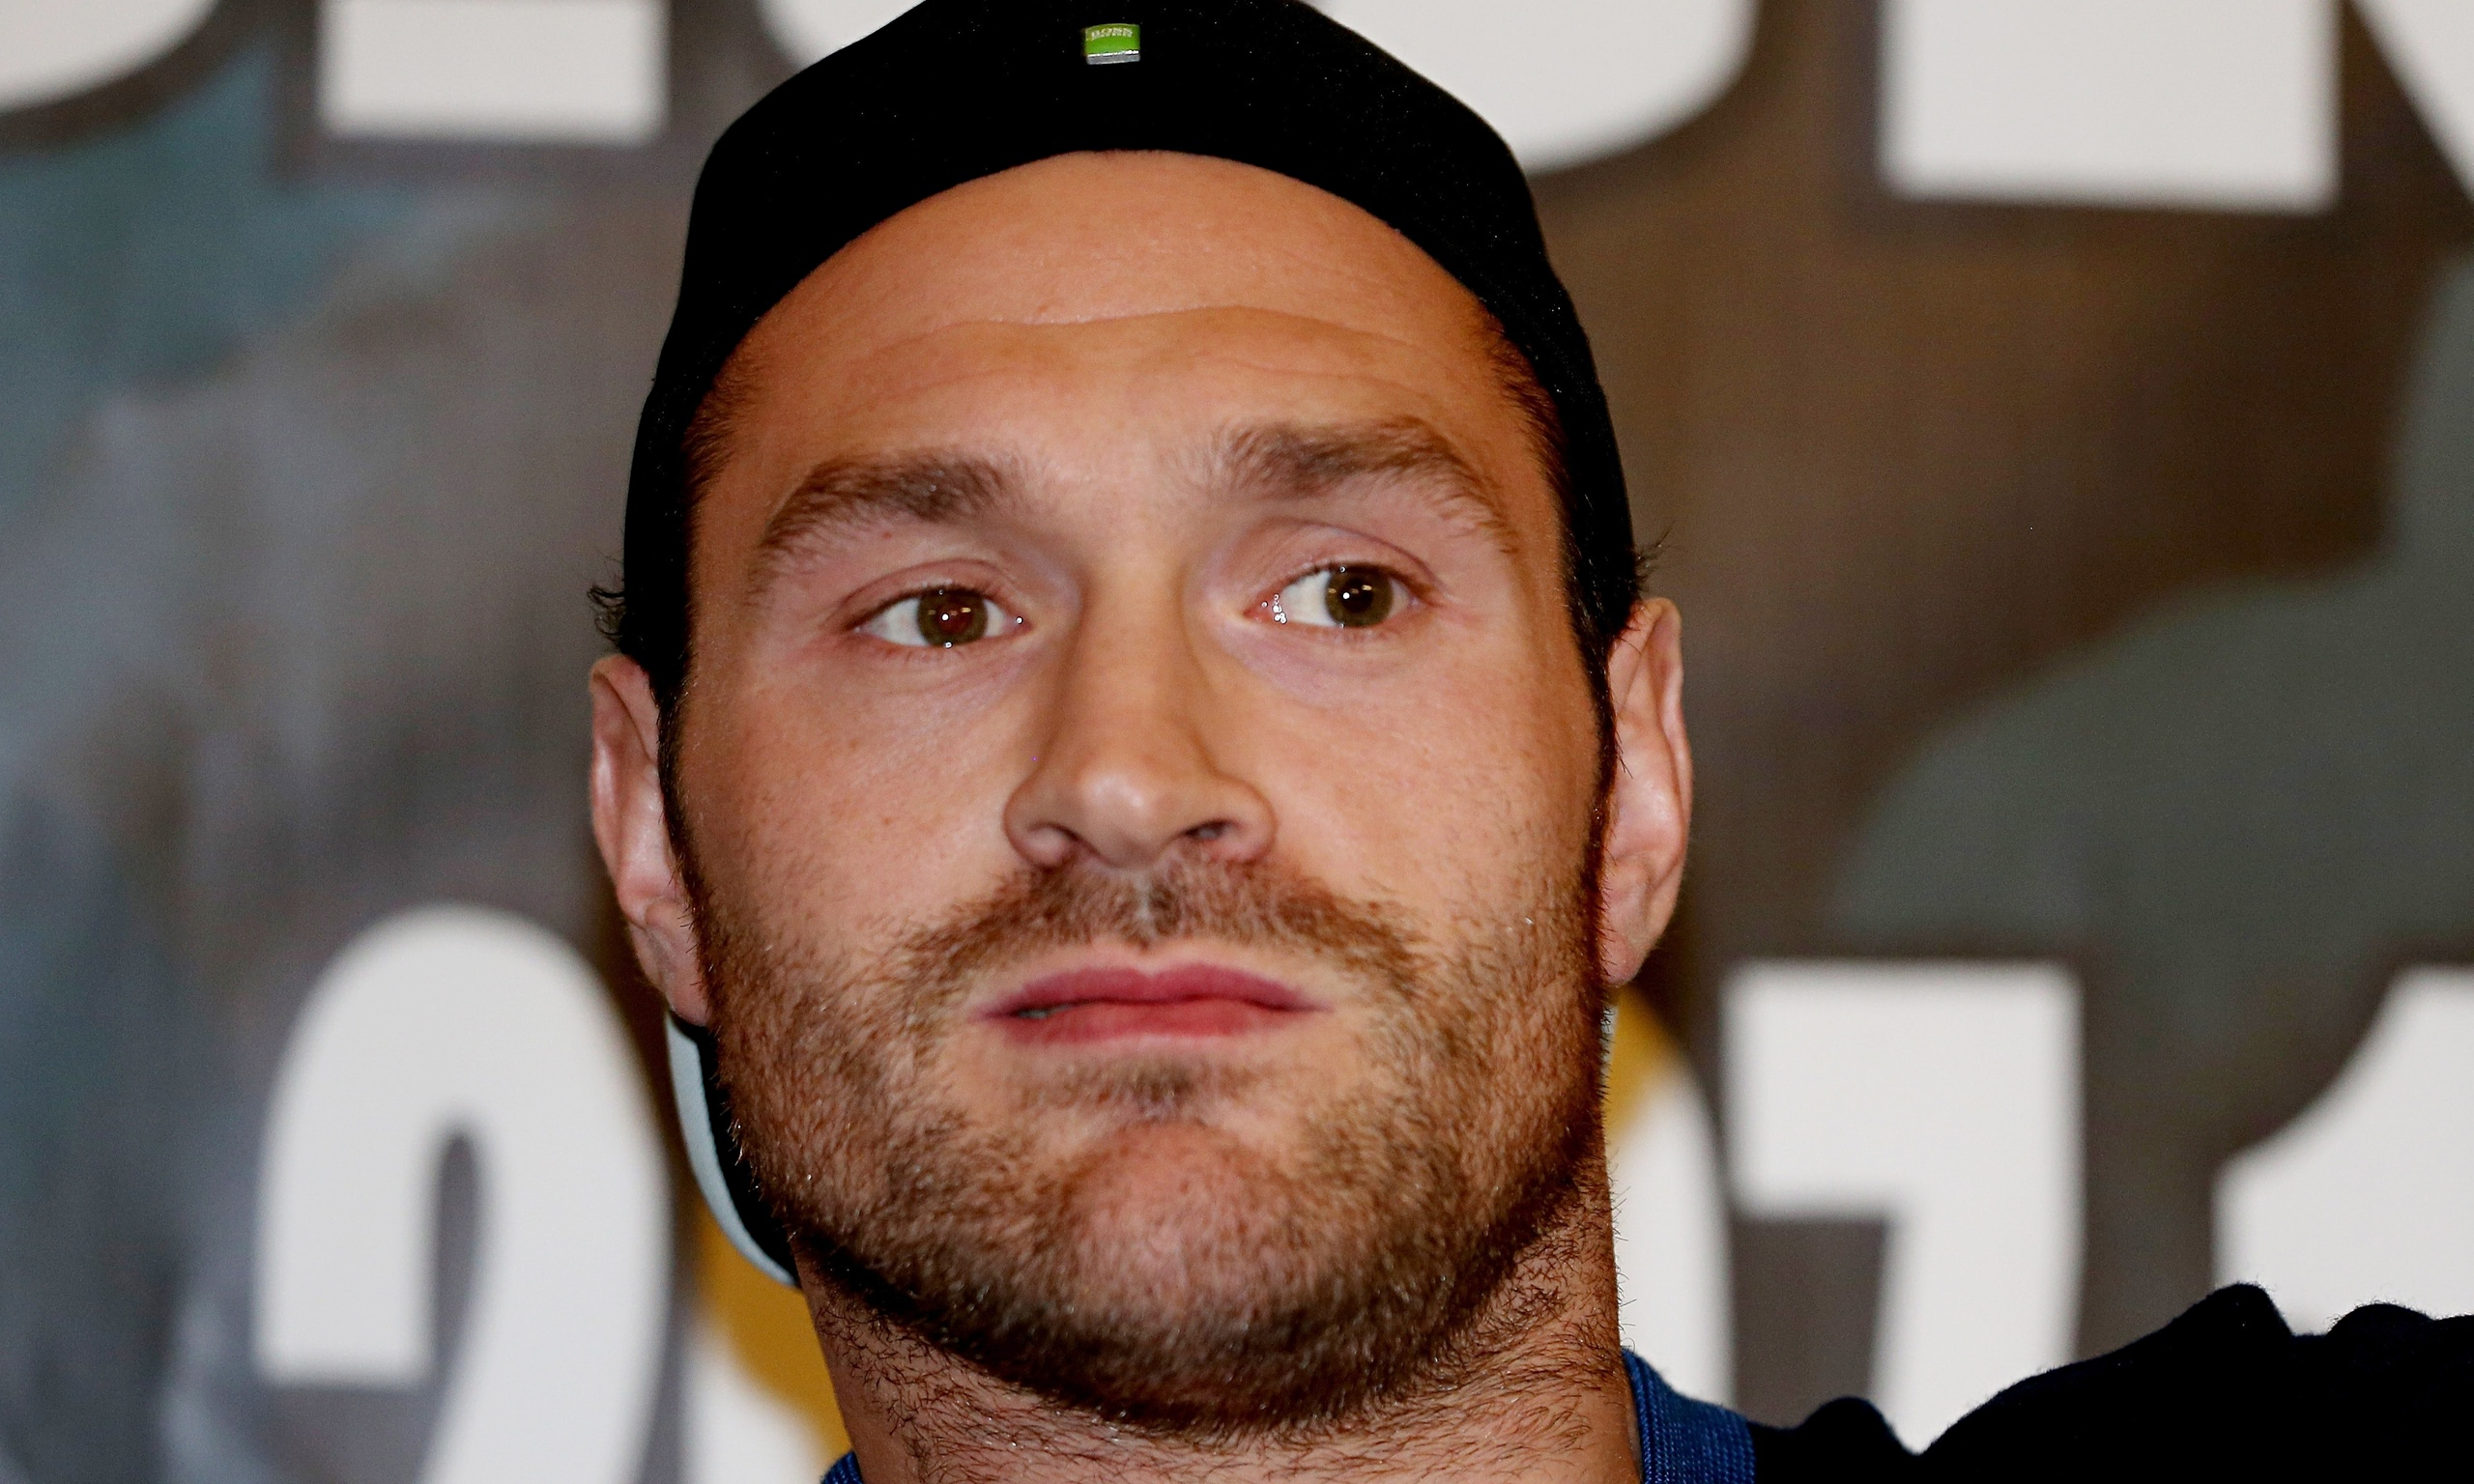 Tris Dixon speaks to Ben Davison the trainer commissioned to guide the Tyson Fury comeback